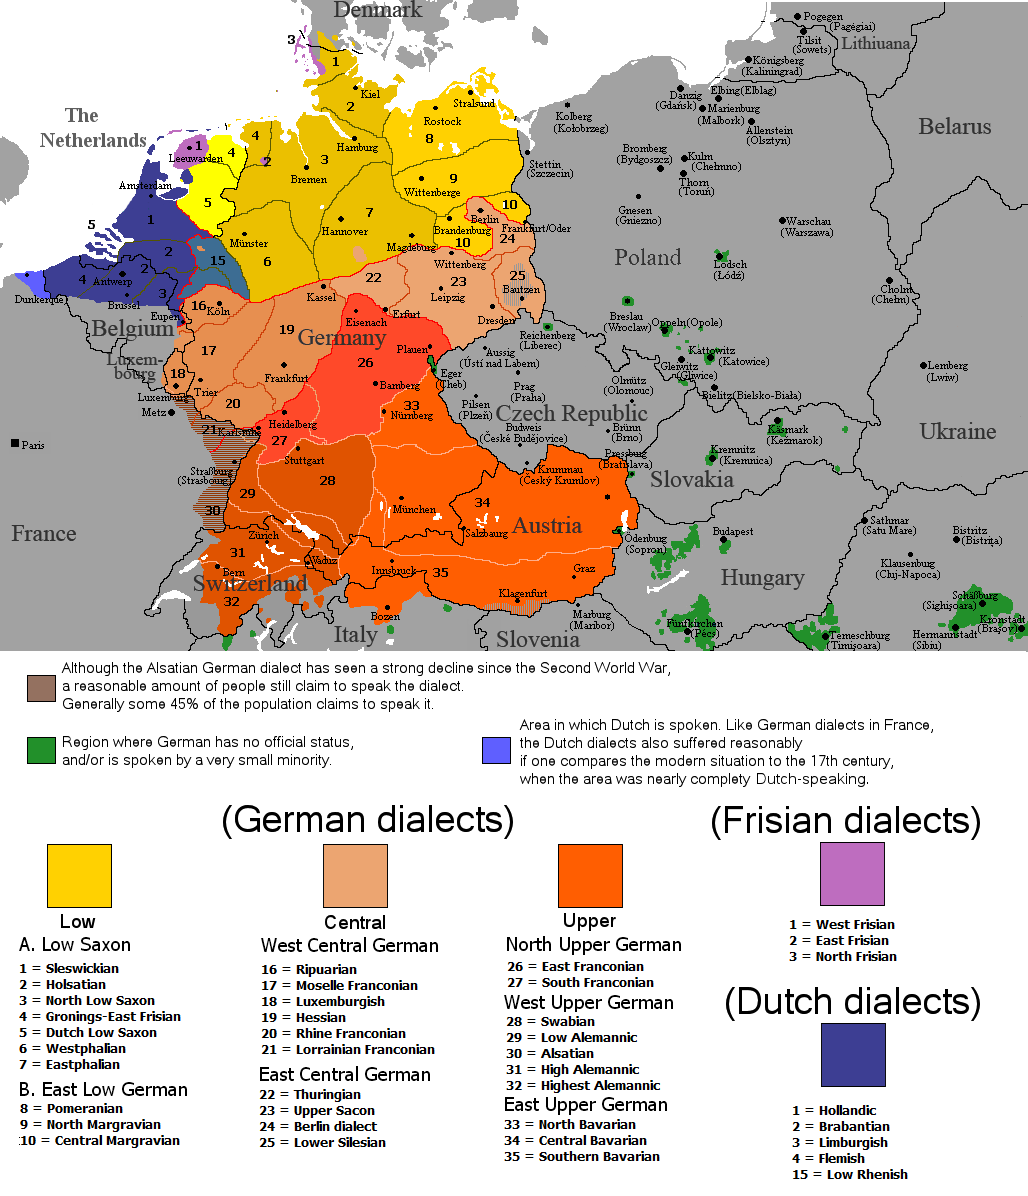 continental west germanic languages german dialects